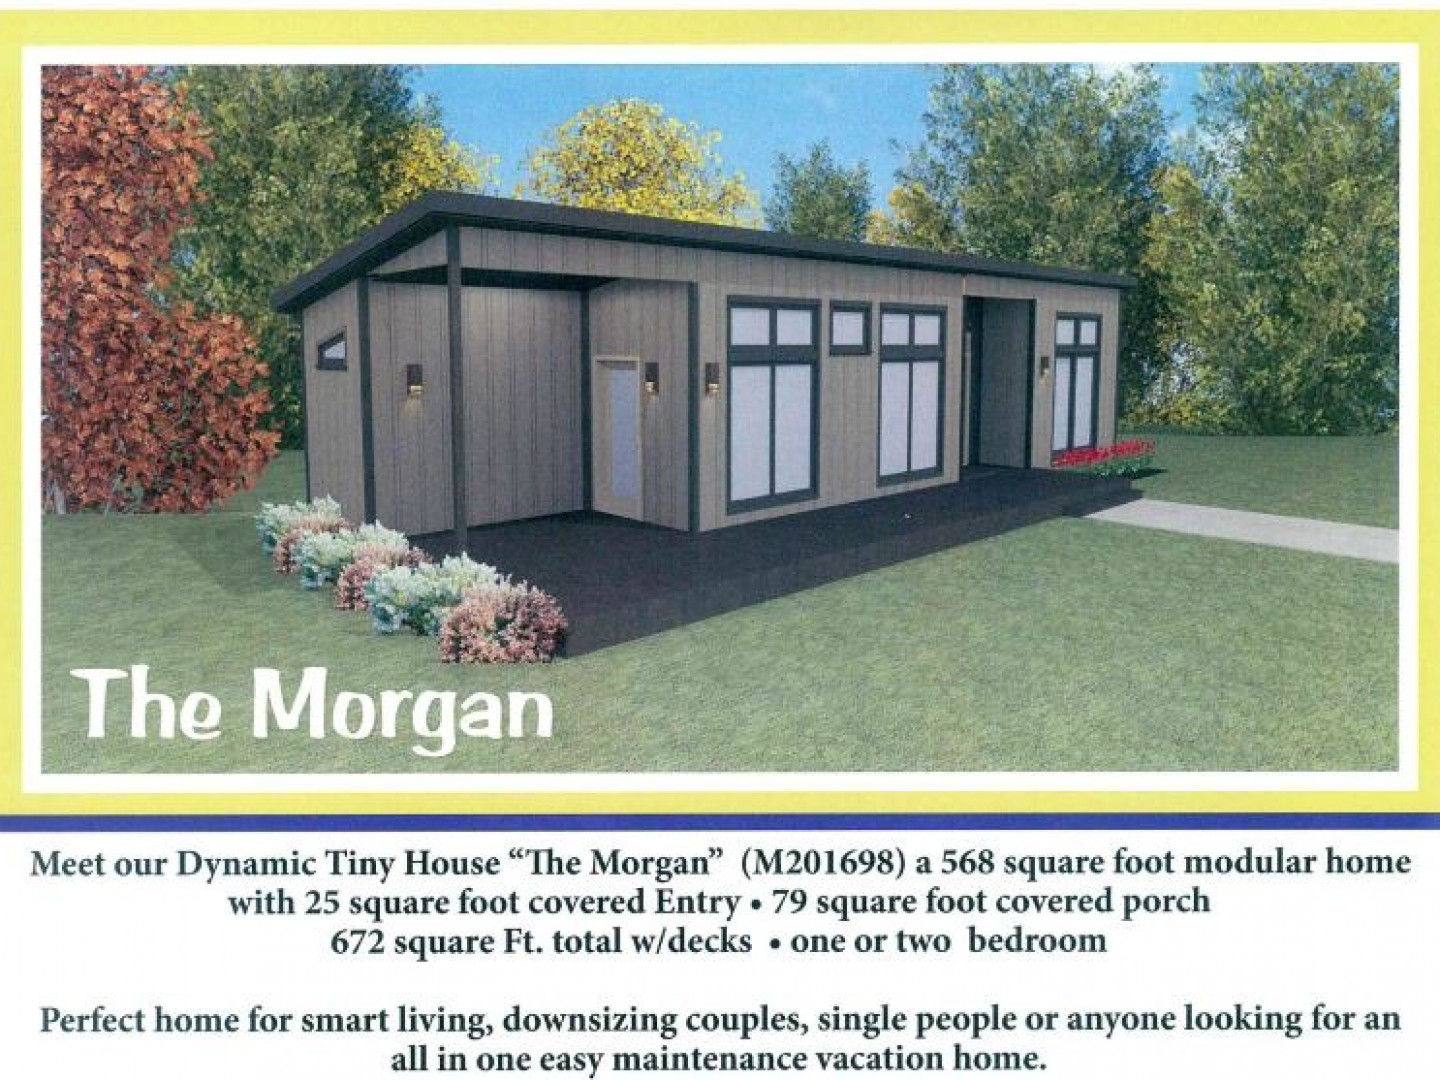 NEW!! Our version of the Tiny Home